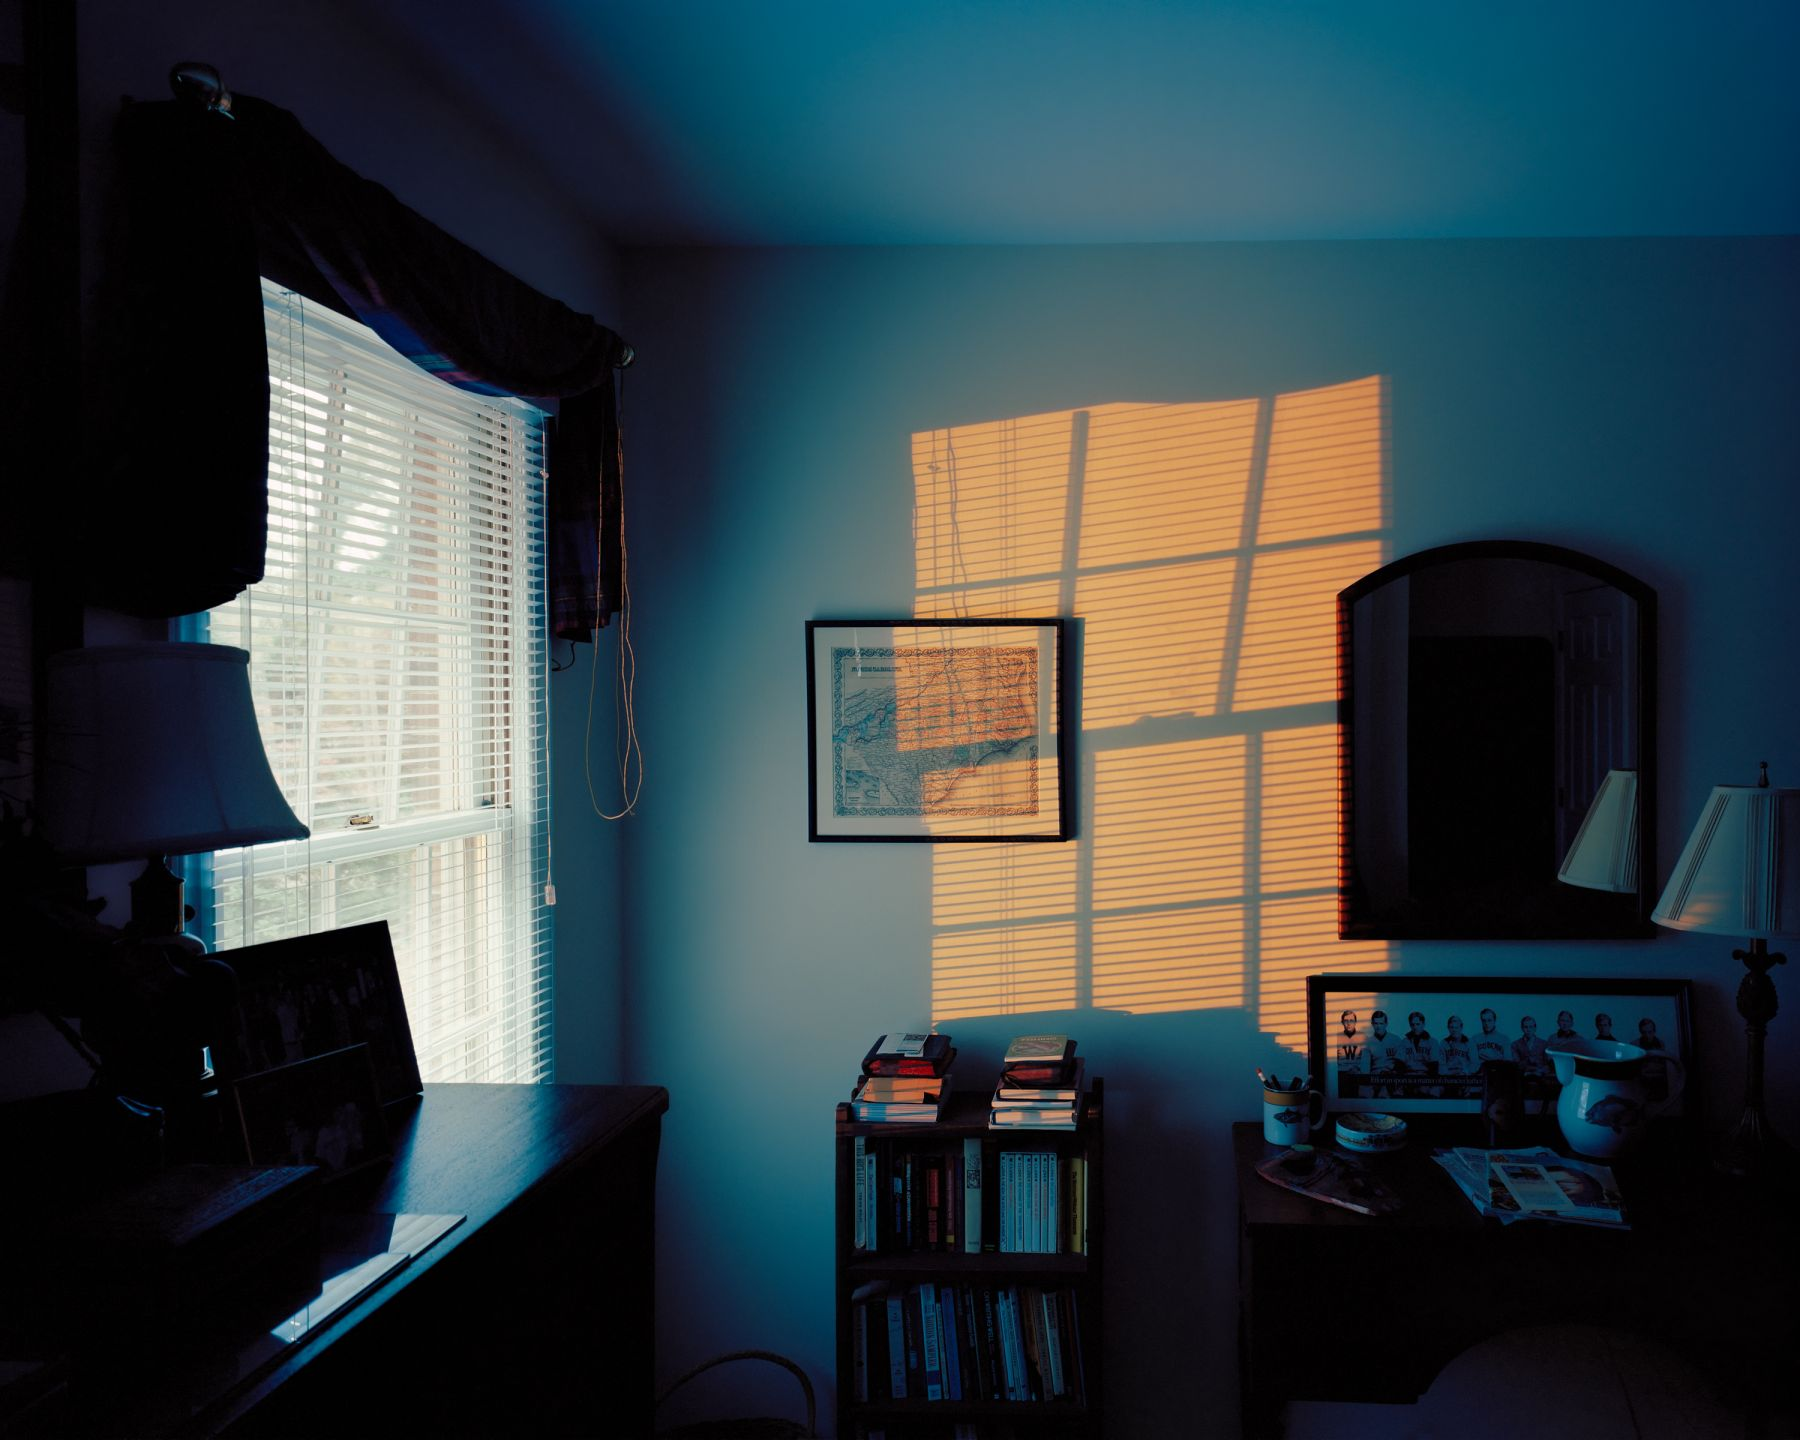 McNair Evans, Floodlight, 2009, Archival Pigment Print, 32h x 40w in, Edition of 5, Photography